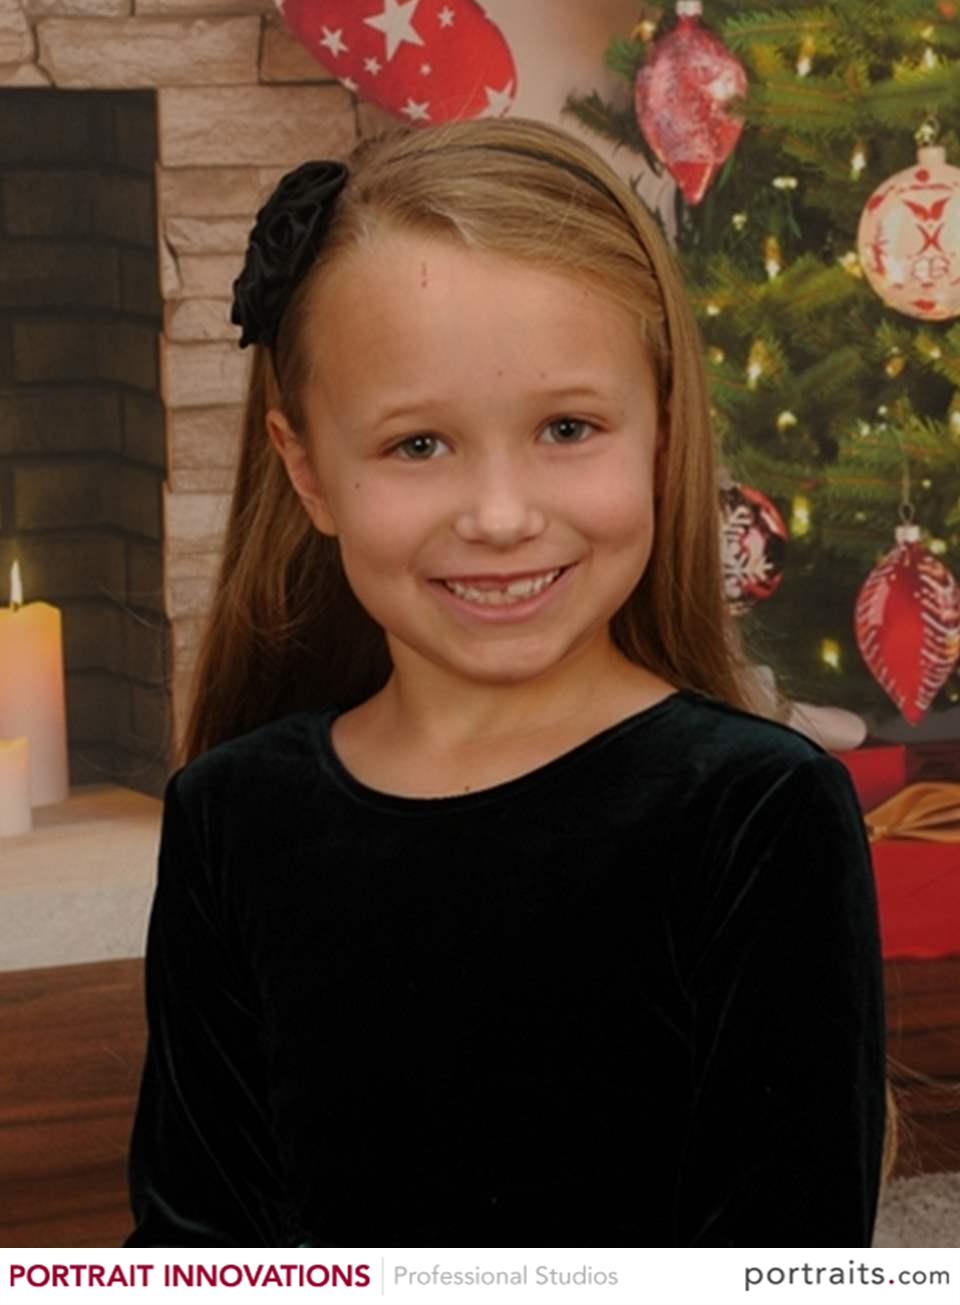 Capturing the Holiday Season Thanks to Portrait Innovations